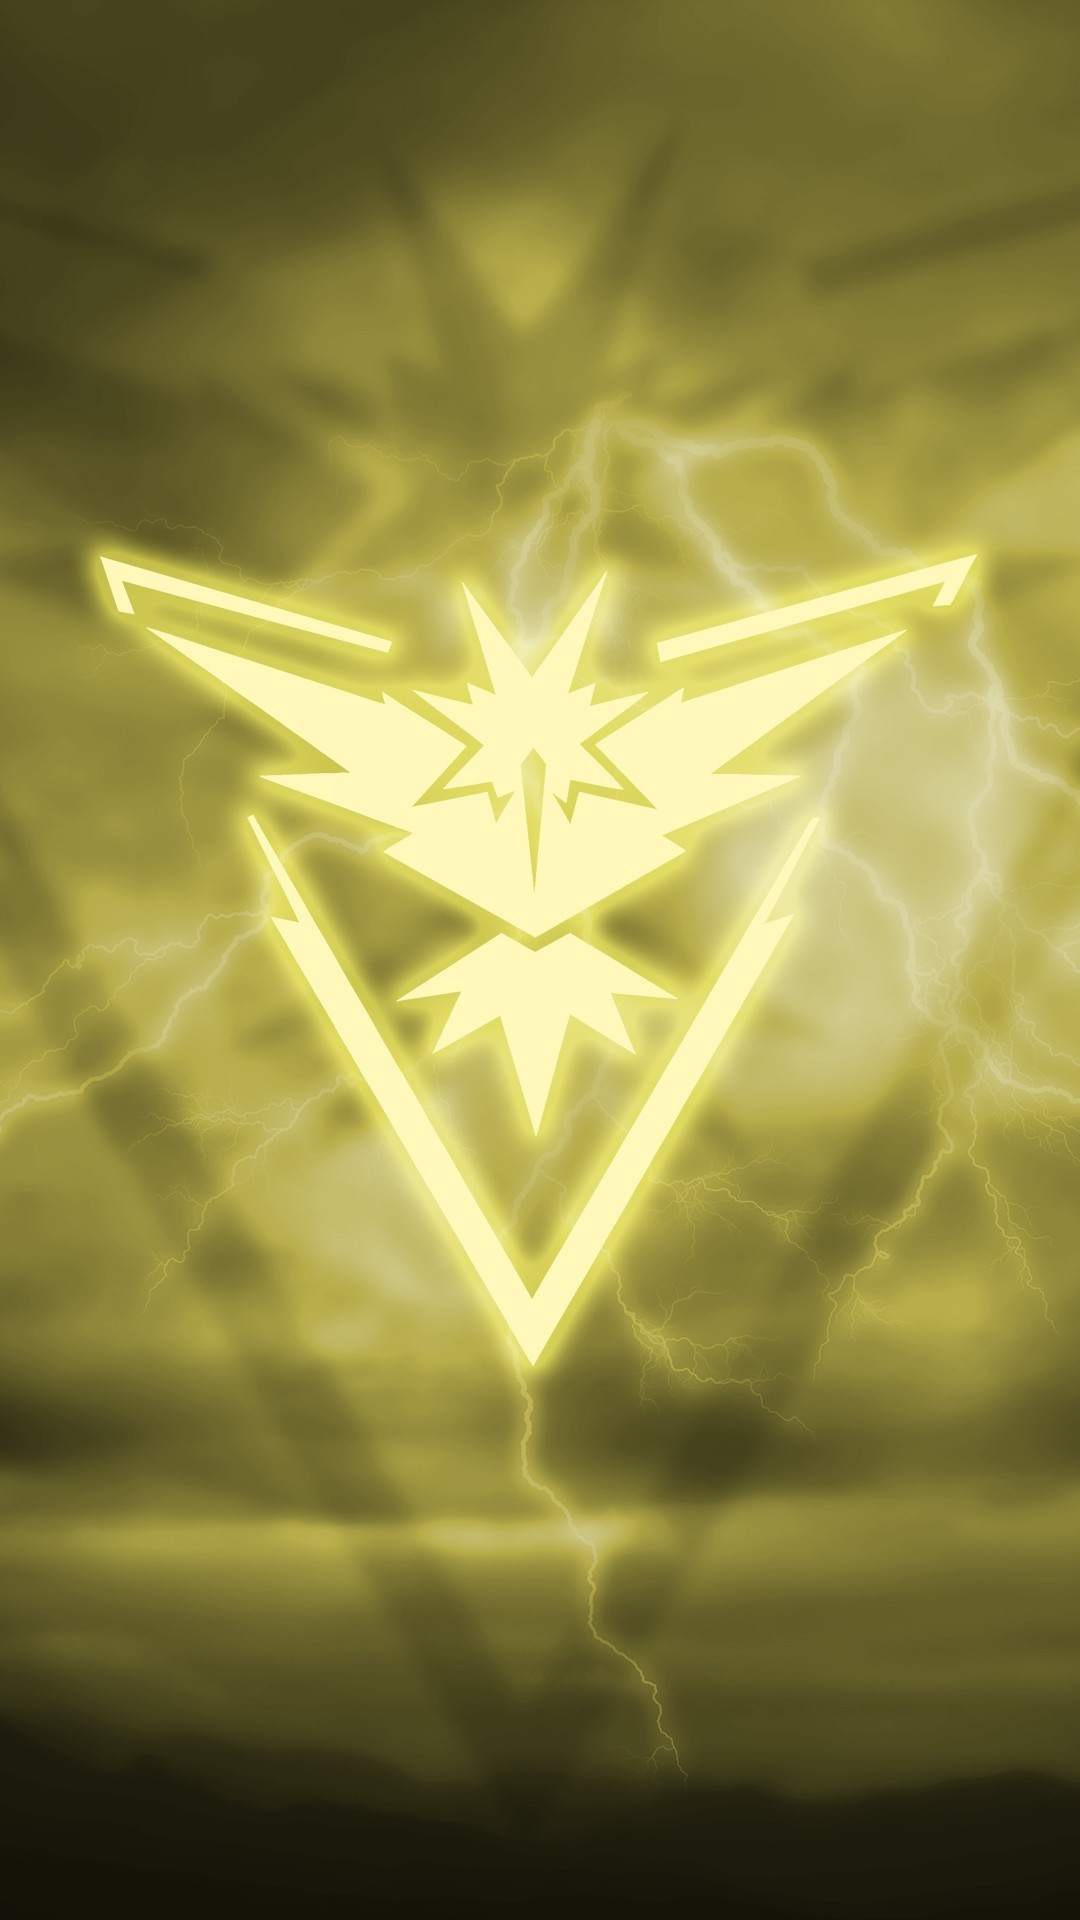 Instinct Team Hd Wallpapers For Iphone 7 Wallpapers Pictures